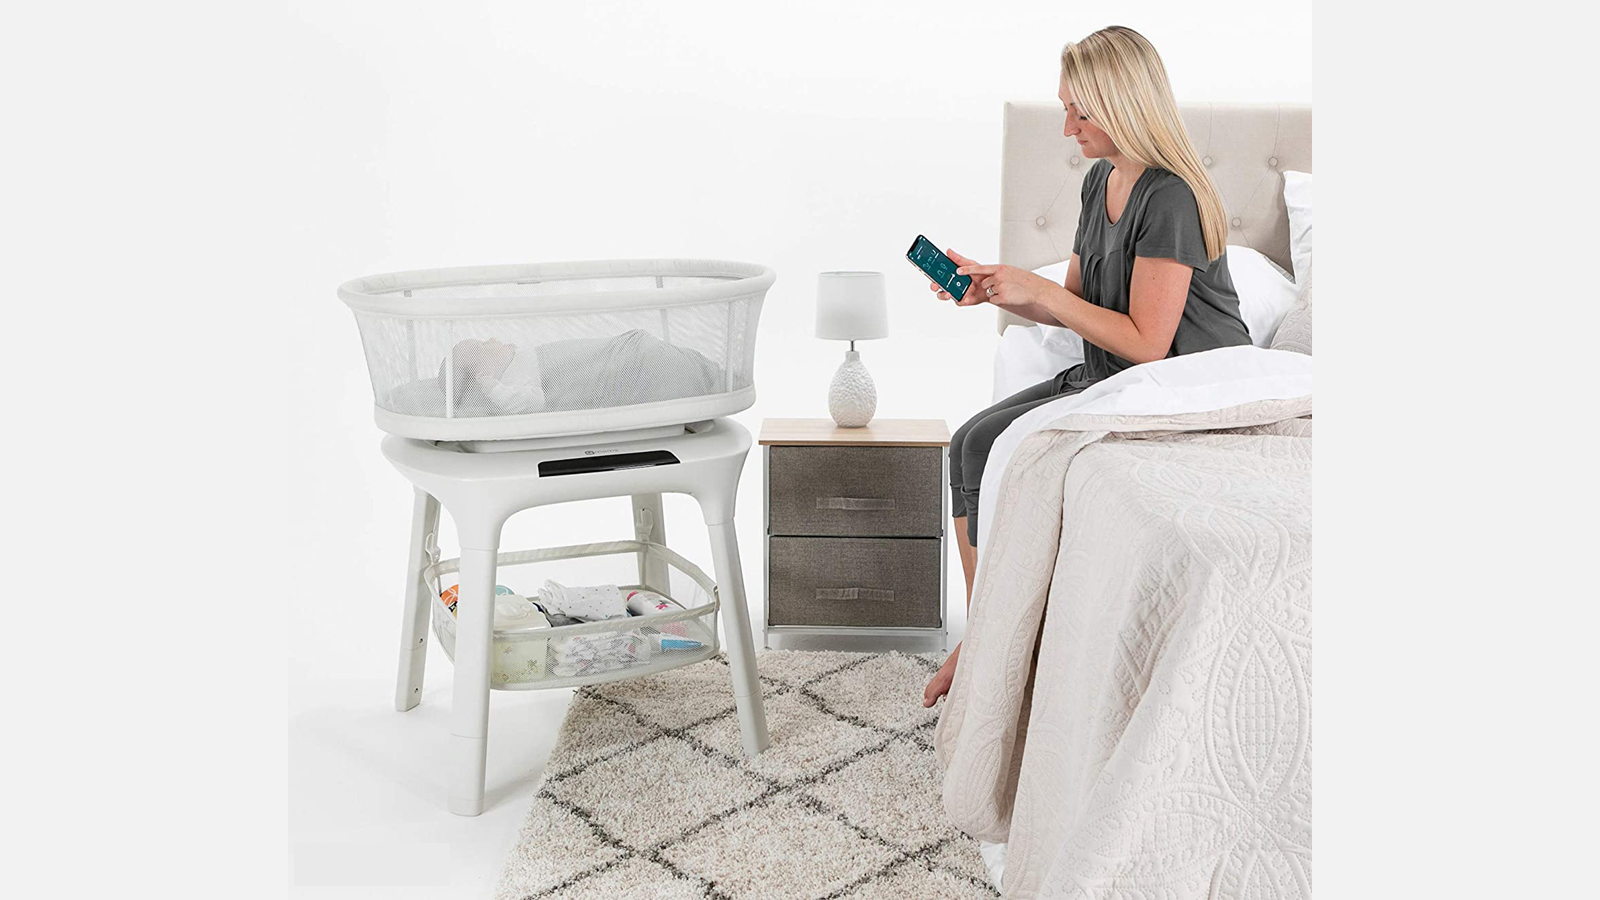 New mother watches over baby in crib